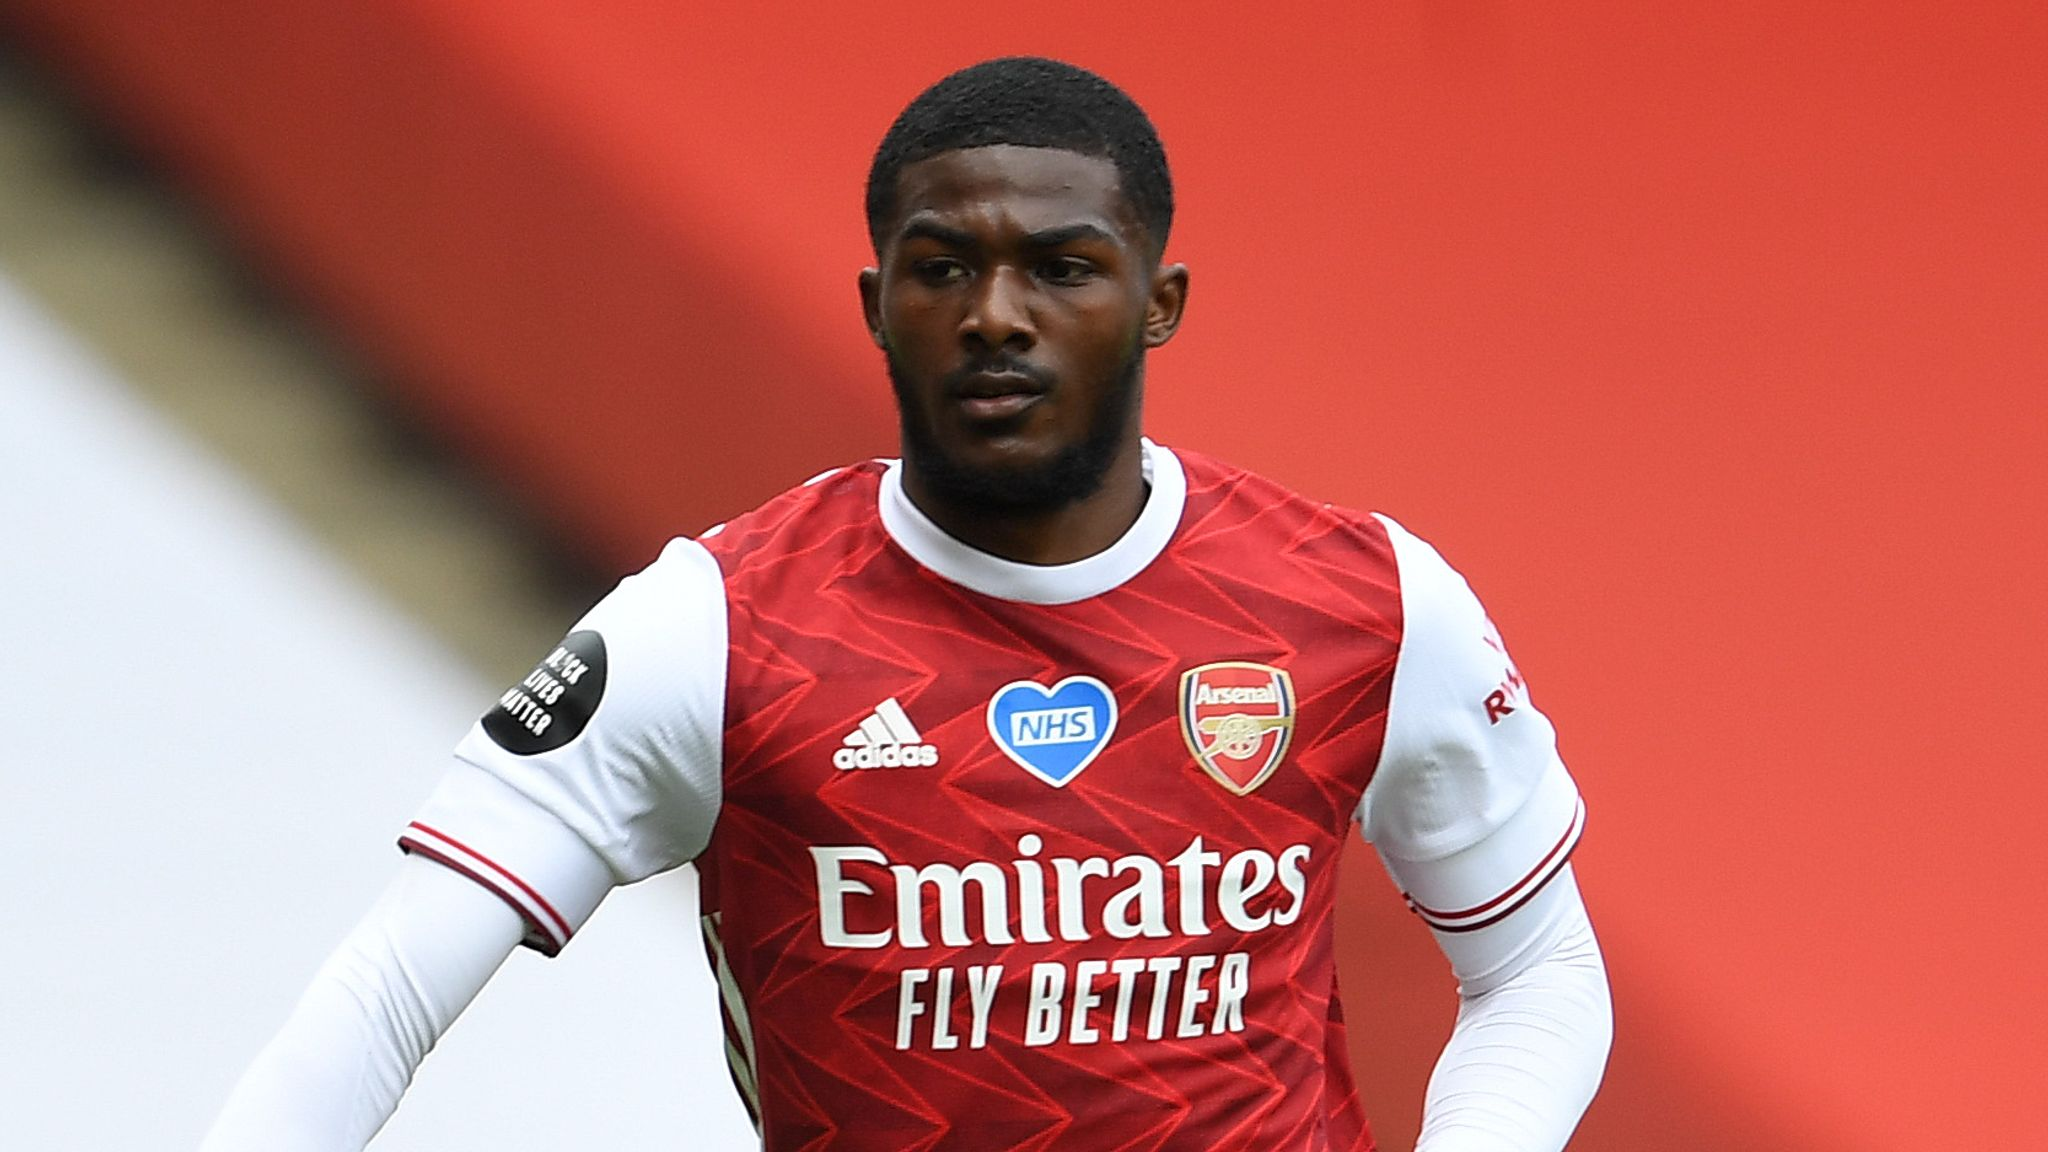 Ainsley Maitland-Niles: Three clubs interested in Arsenal midfielder |  Football News | Sky Sports